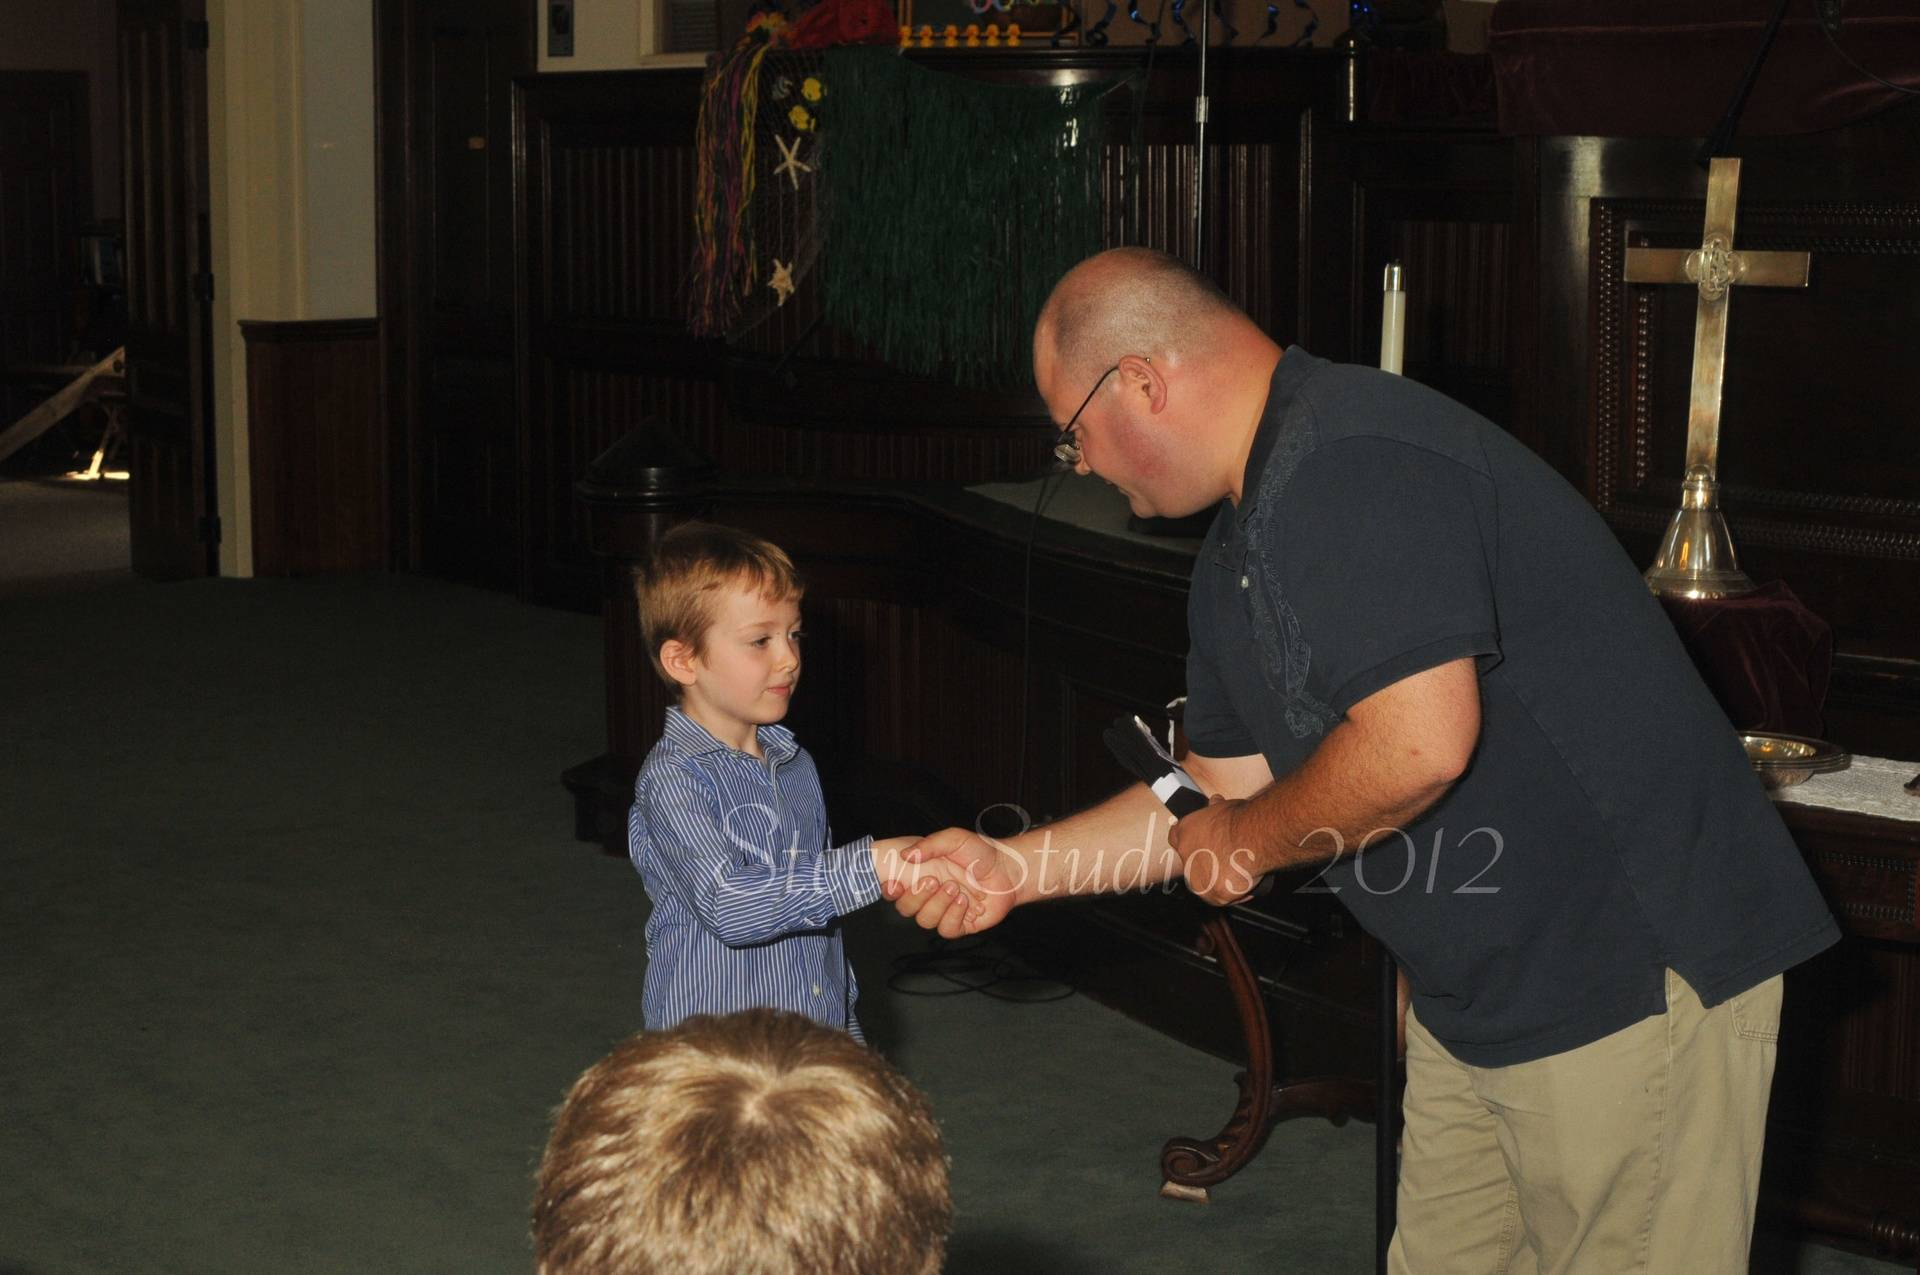 Mr. Q gives Damien his black belt for completing Piano Karate